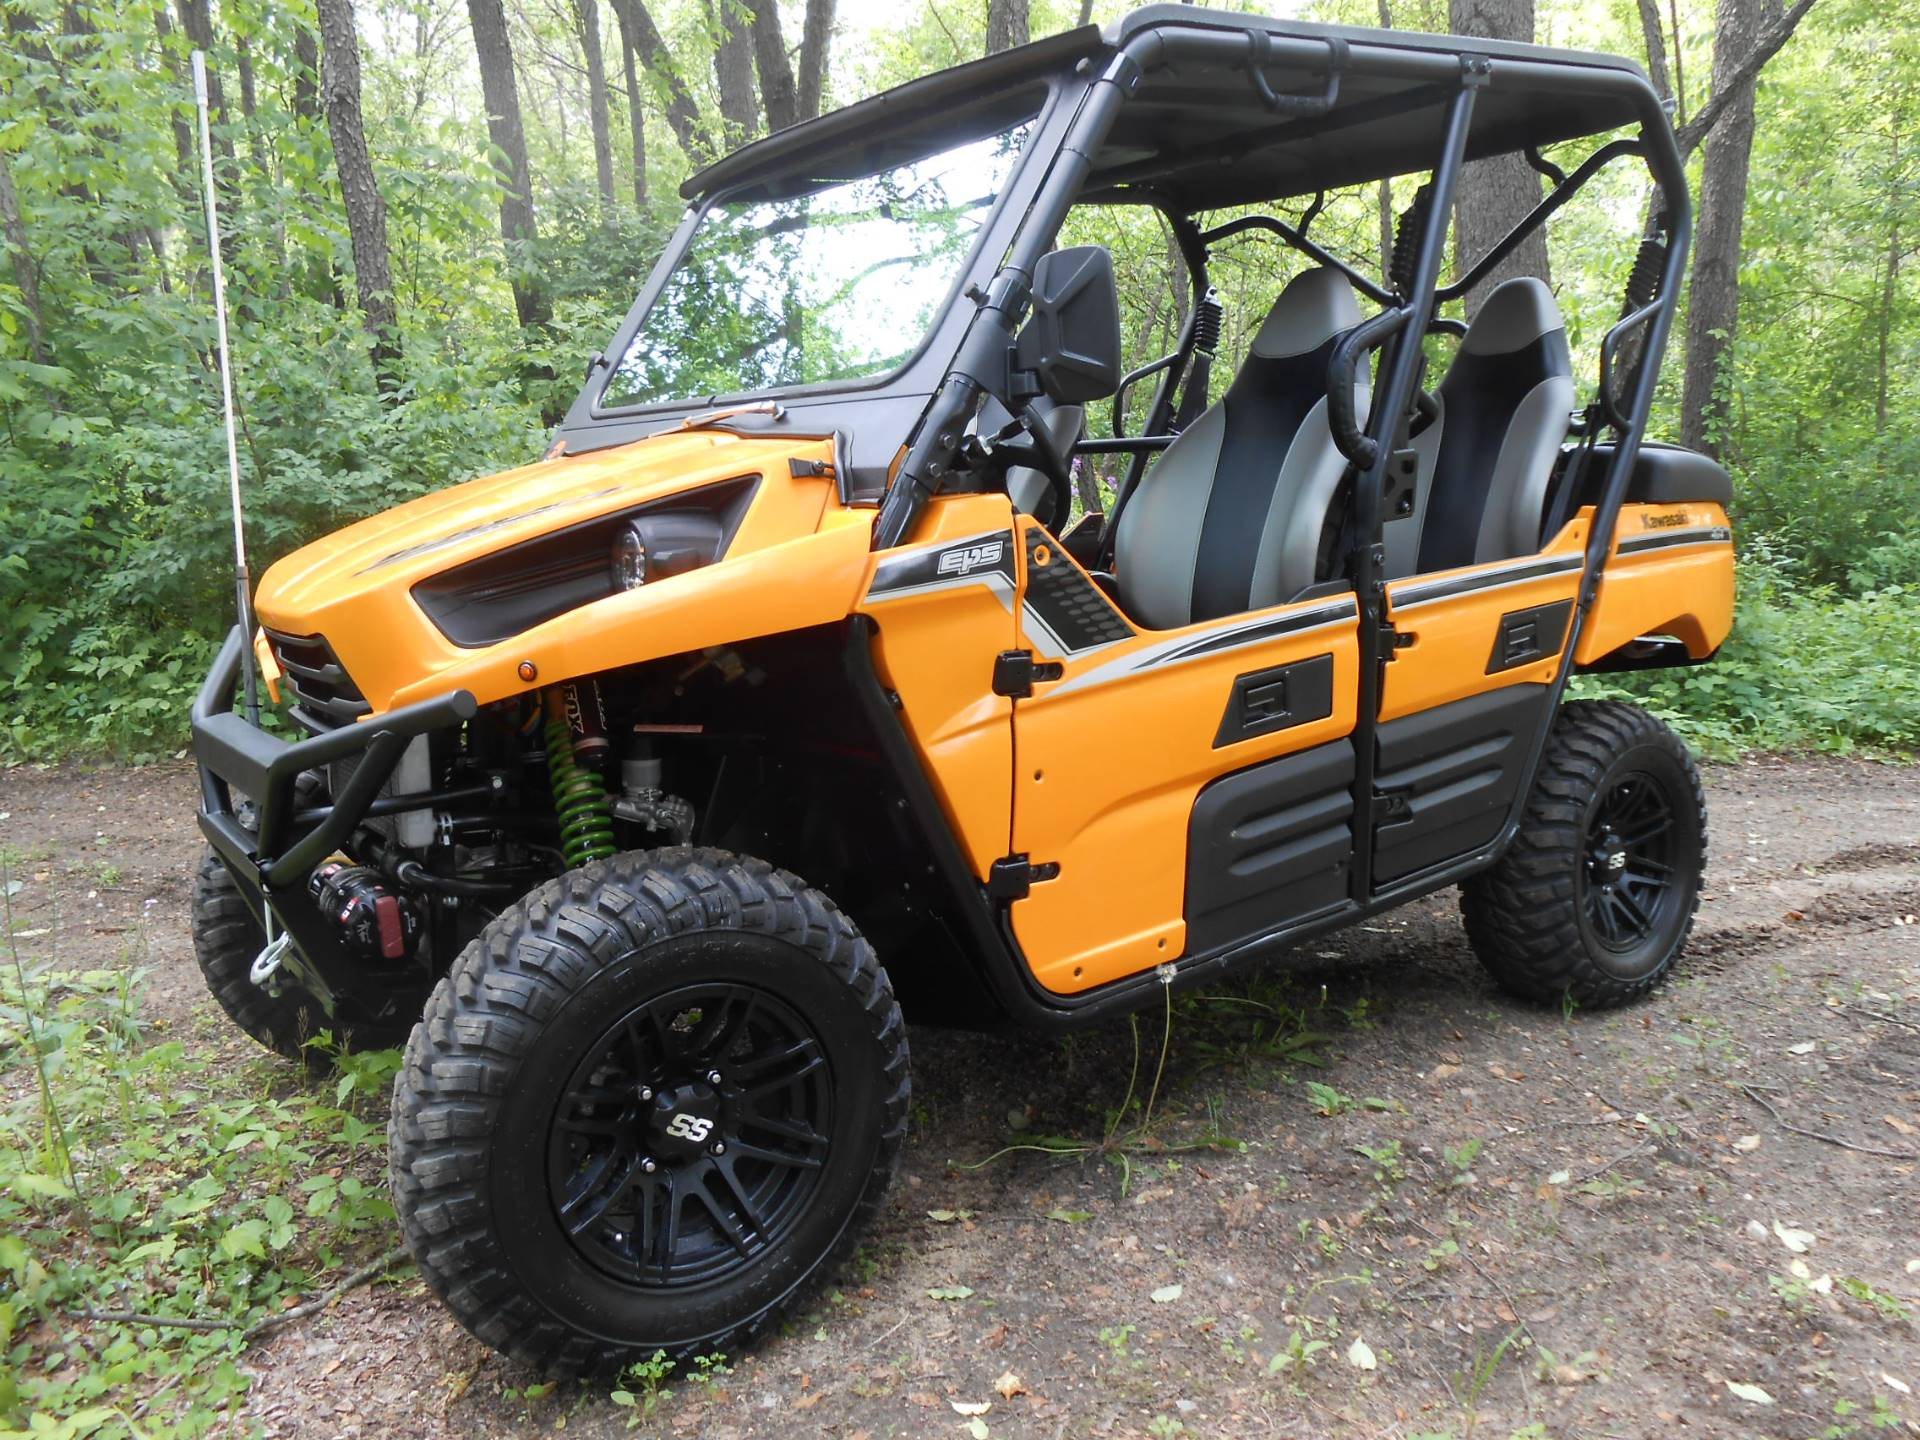 2013 Kawasaki Teryx4™ 750 4x4 EPS LE in Howell, Michigan - Photo 2